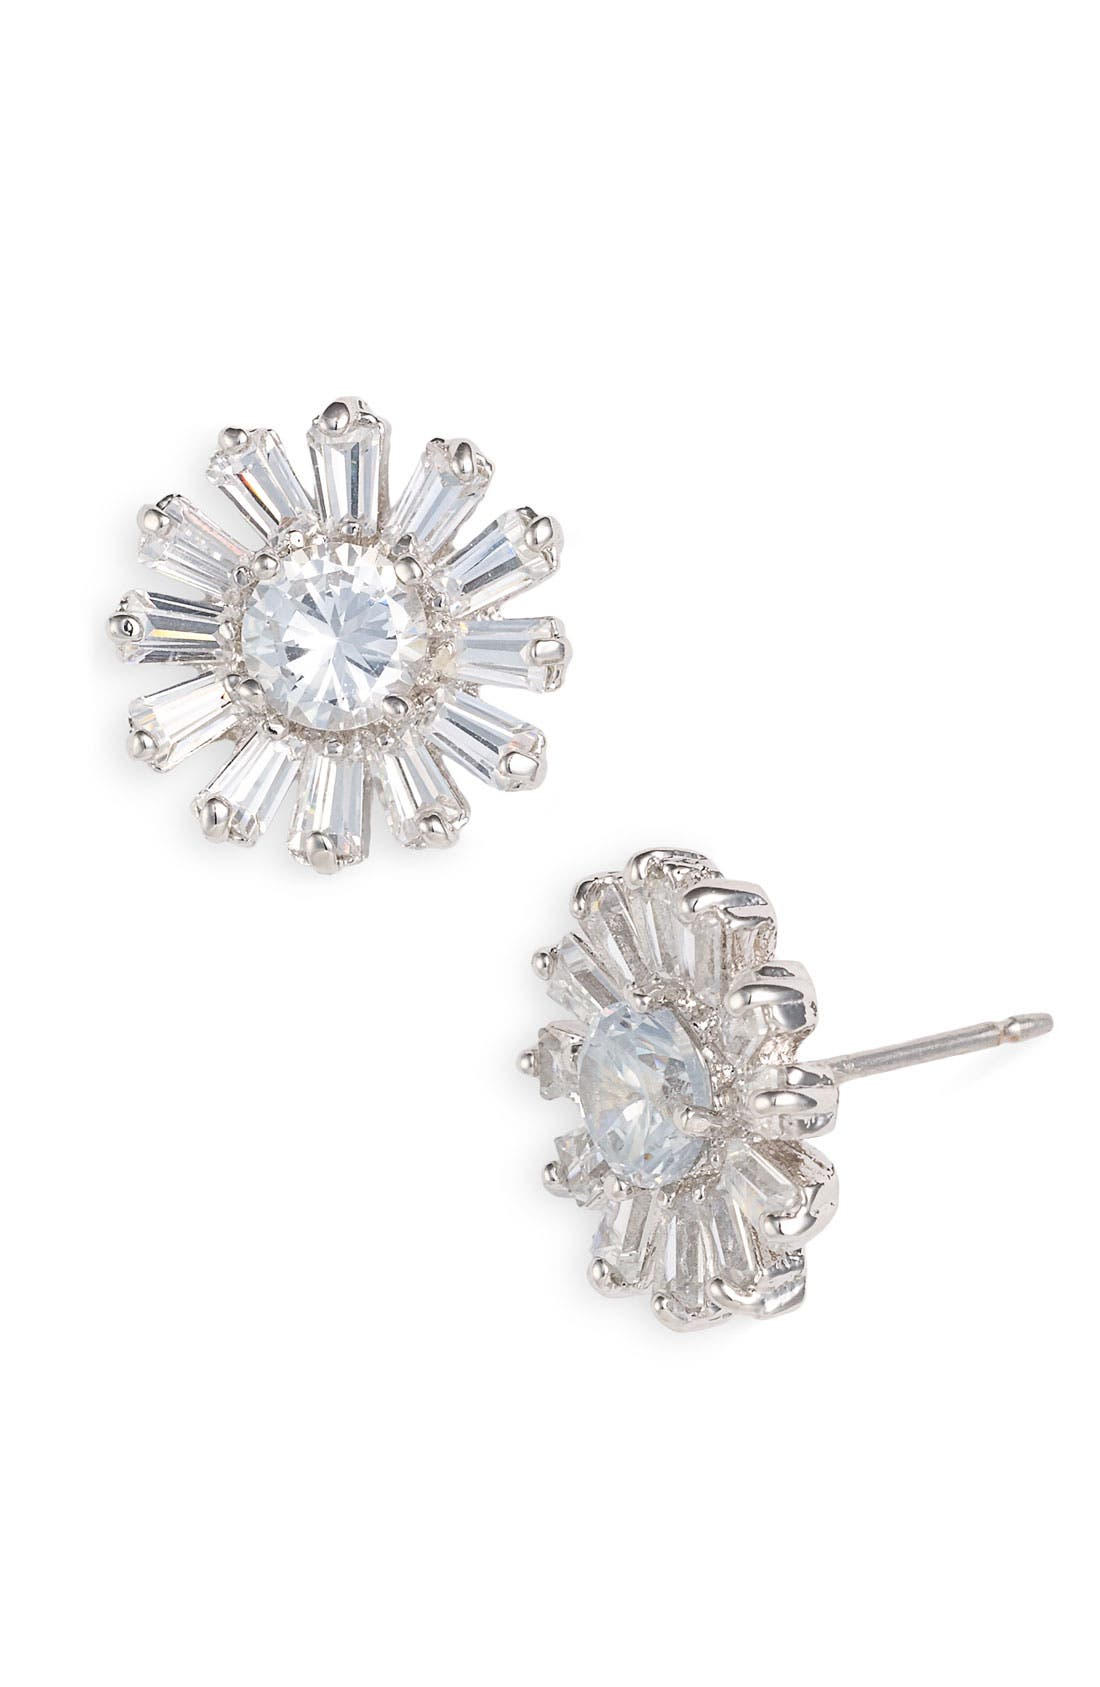 Main Image - kate spade new york 'crystal gardens' stud earrings